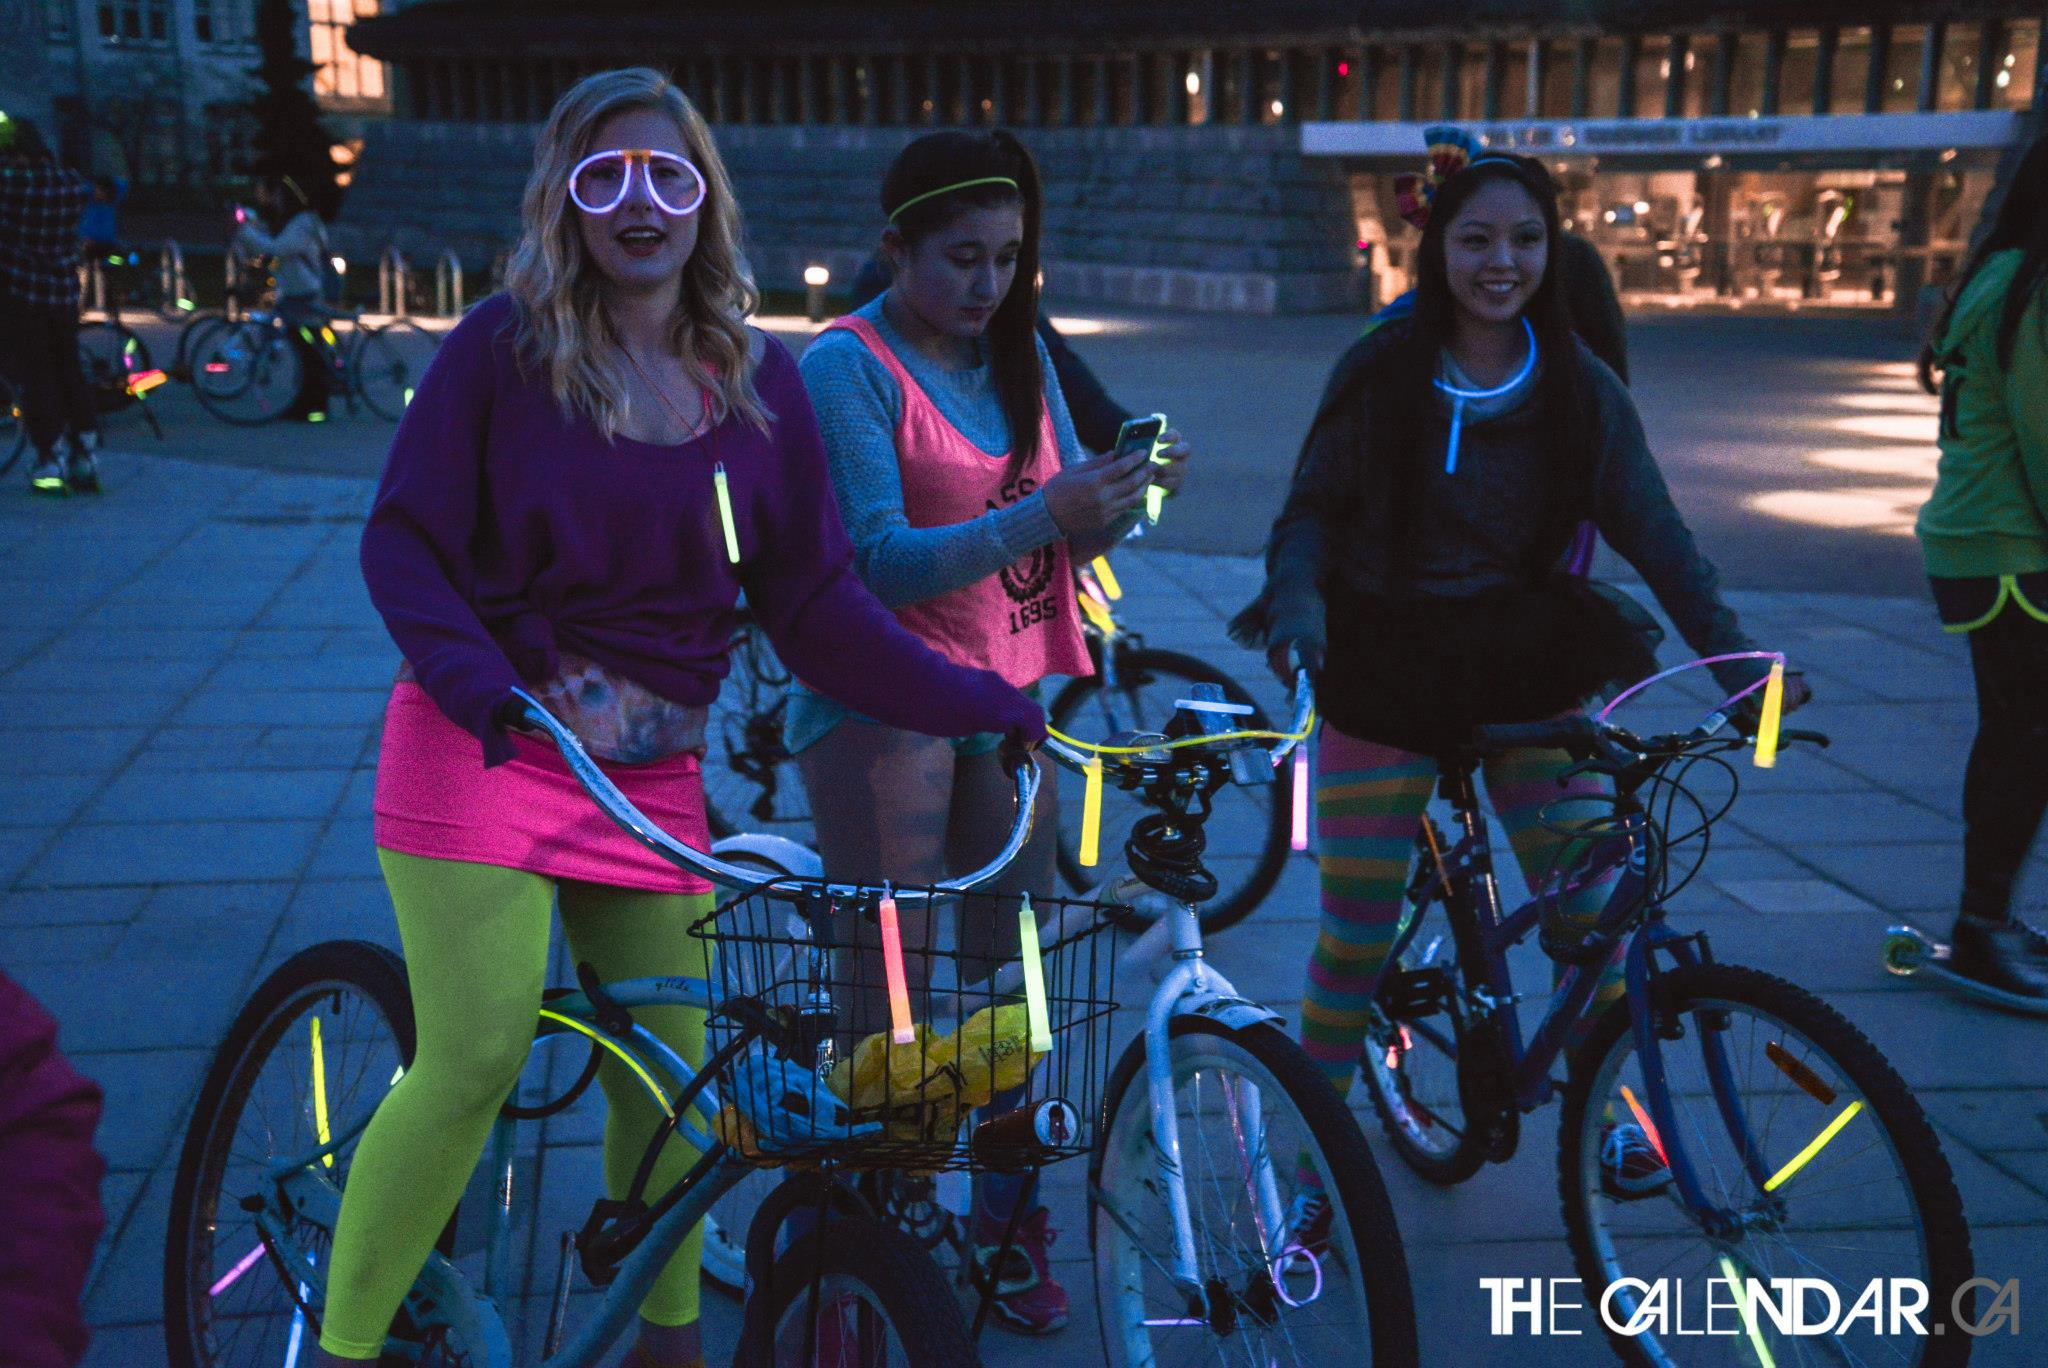 Girls at bike rave (VYVE)